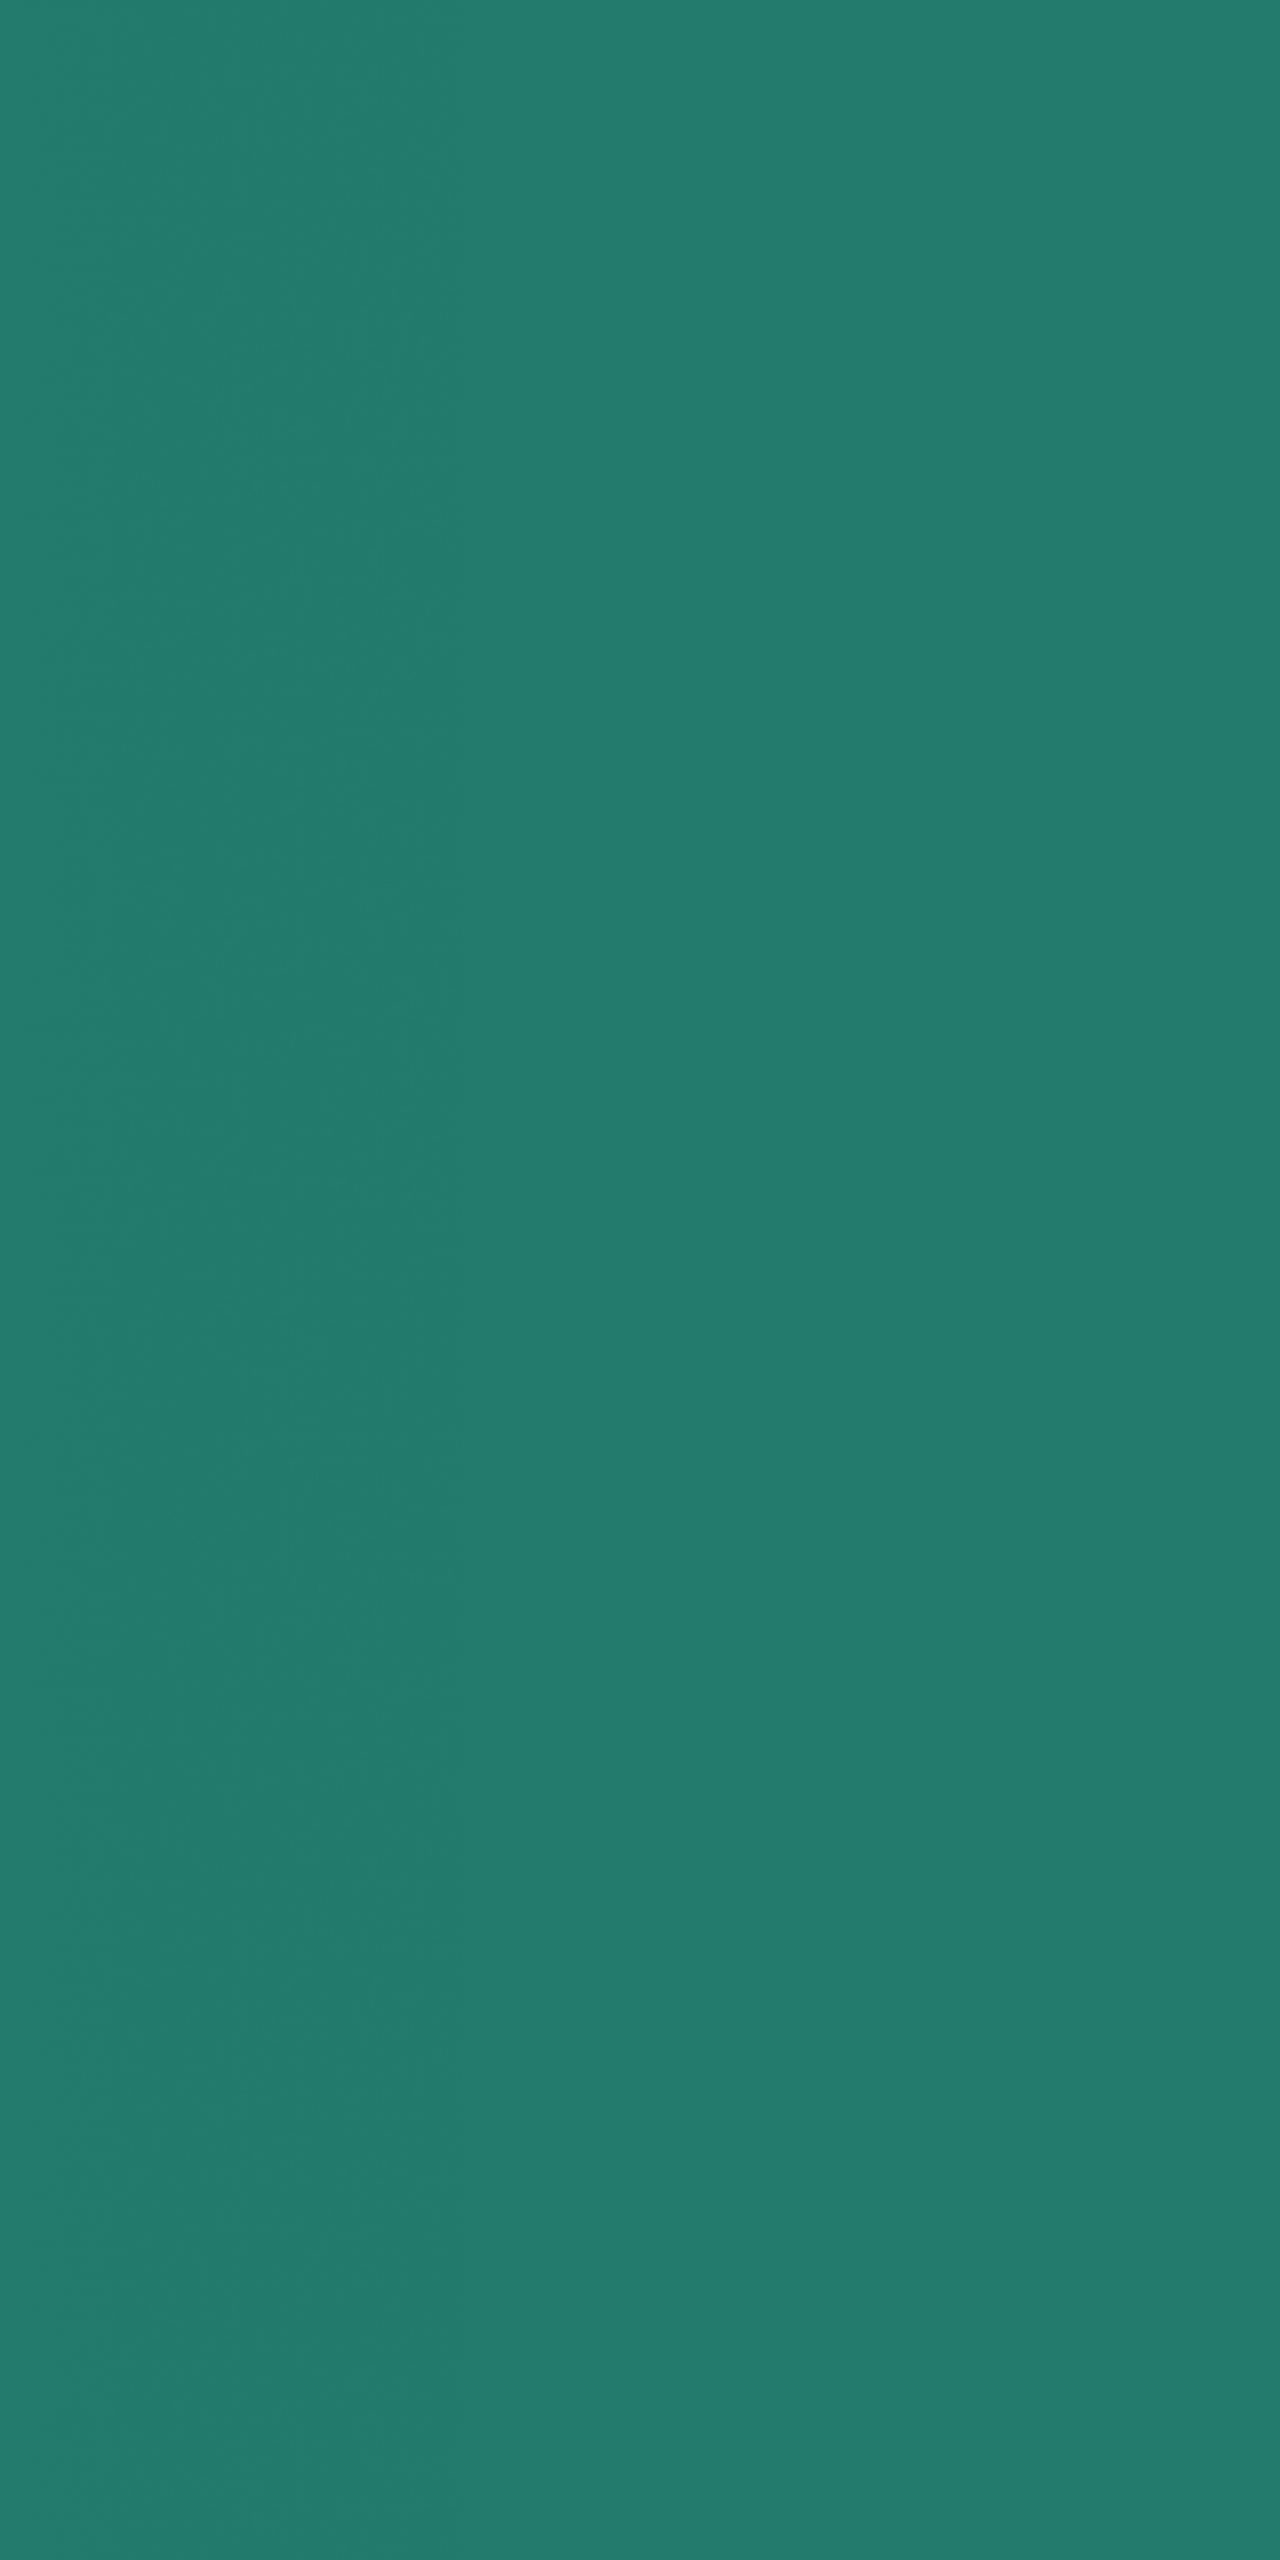 Buildtech 2.0 Bold Colors Teal Glossy 6mm 120 x 240